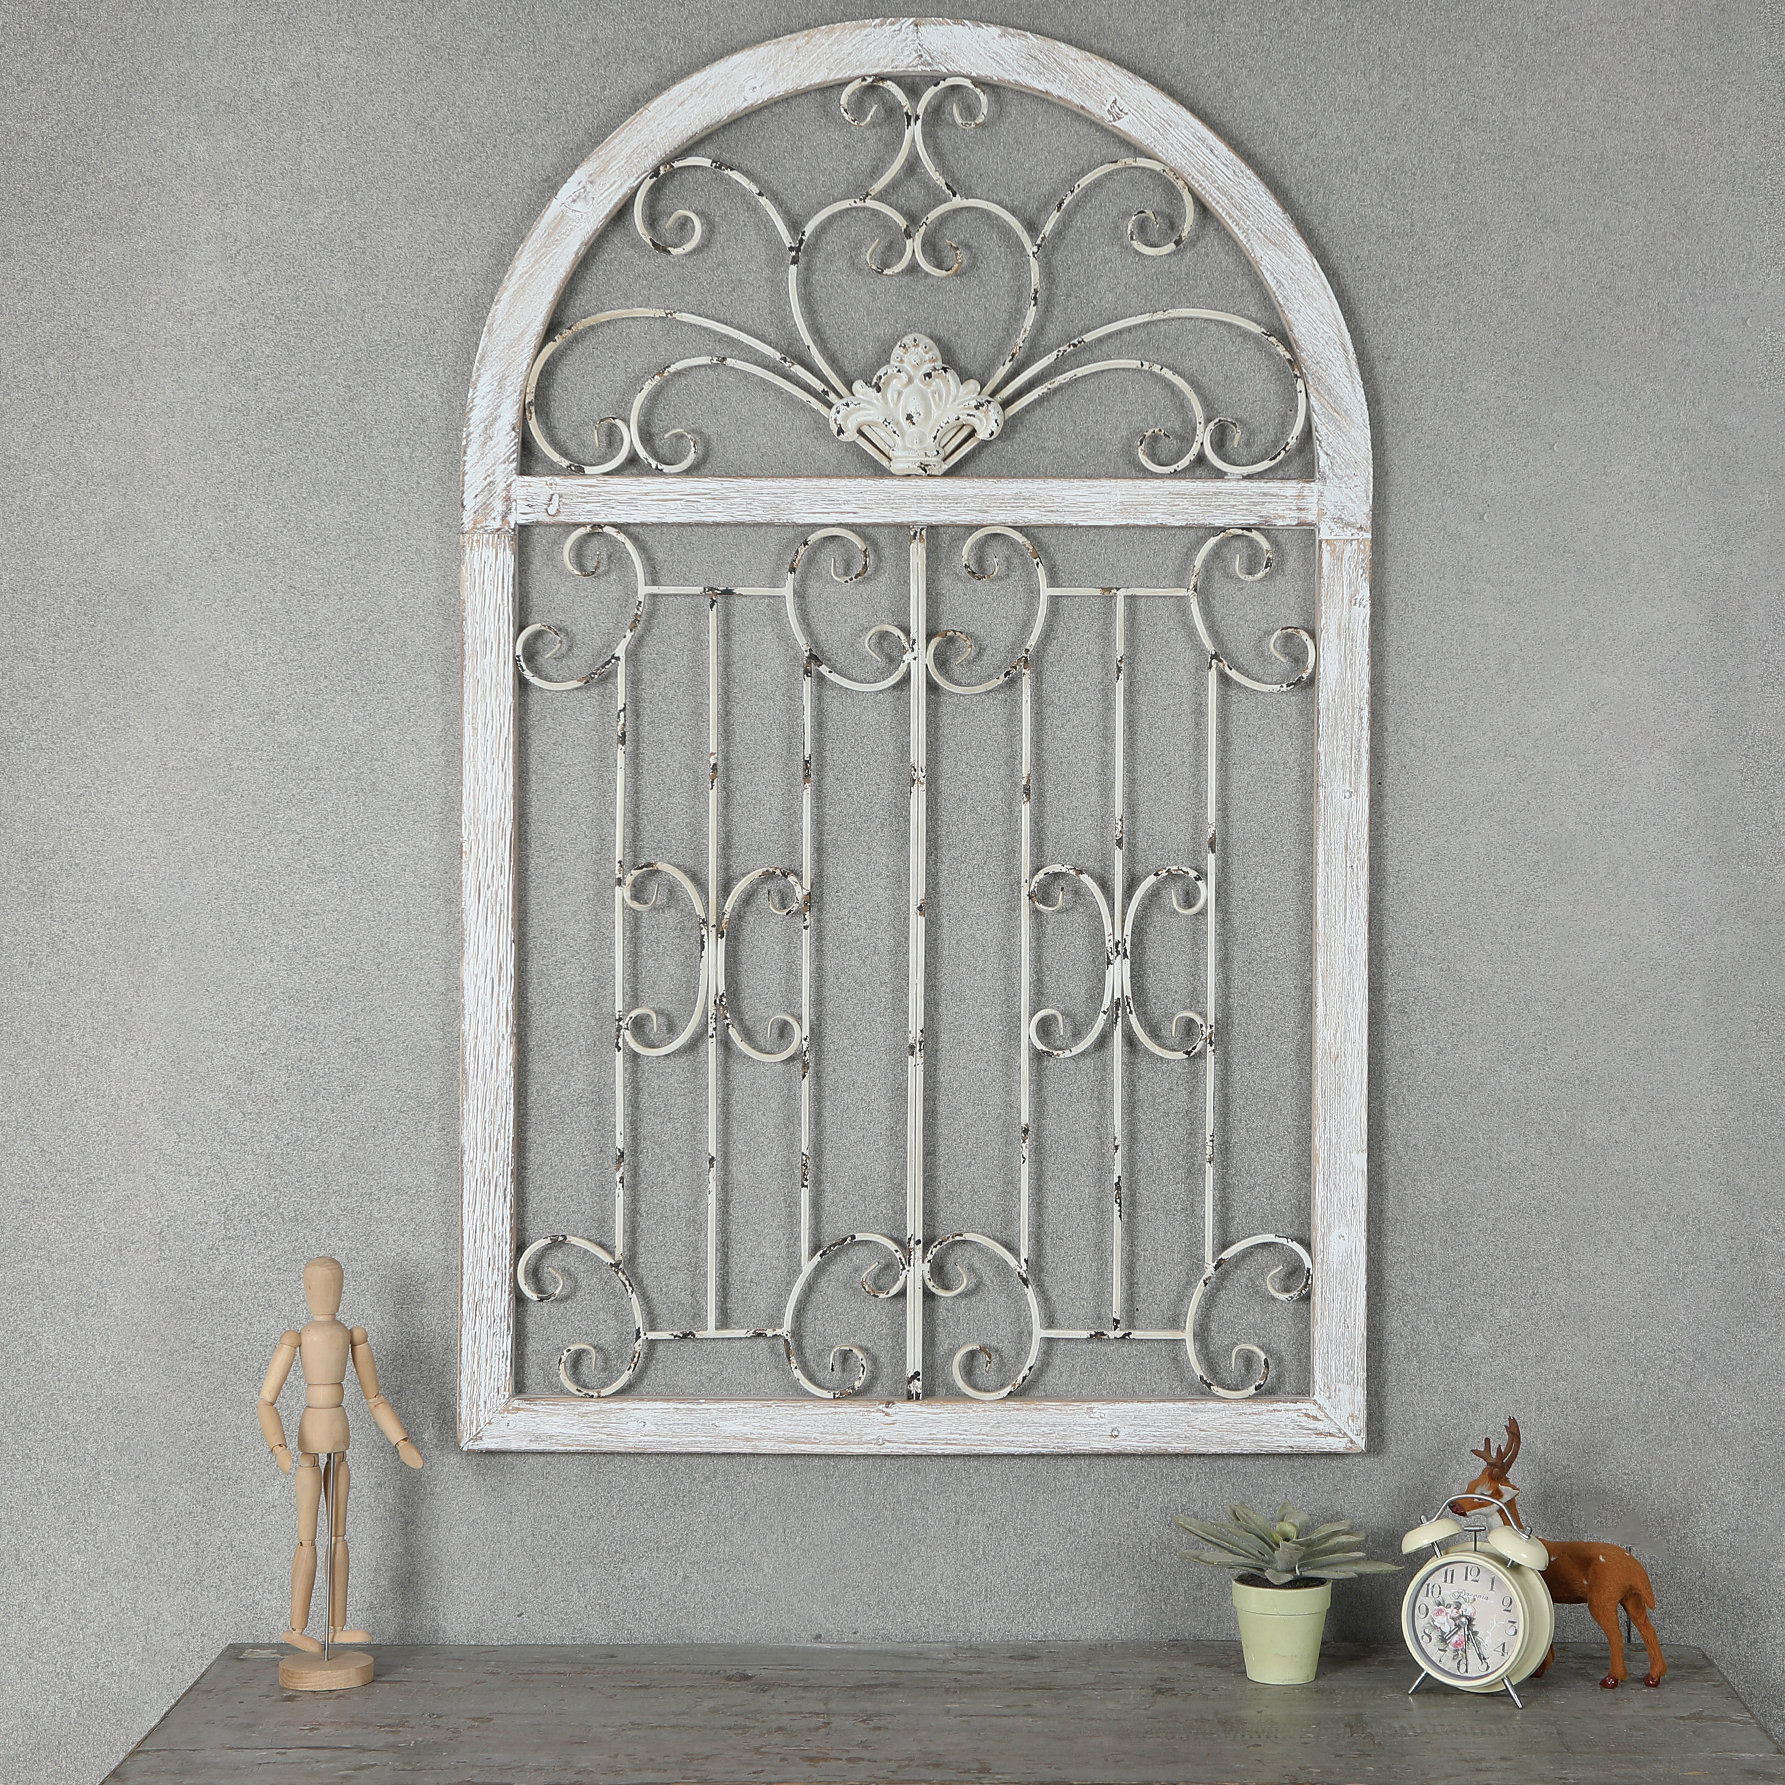 Wayfair Regarding Widely Used Ornate Scroll Wall Decor (View 5 of 20)